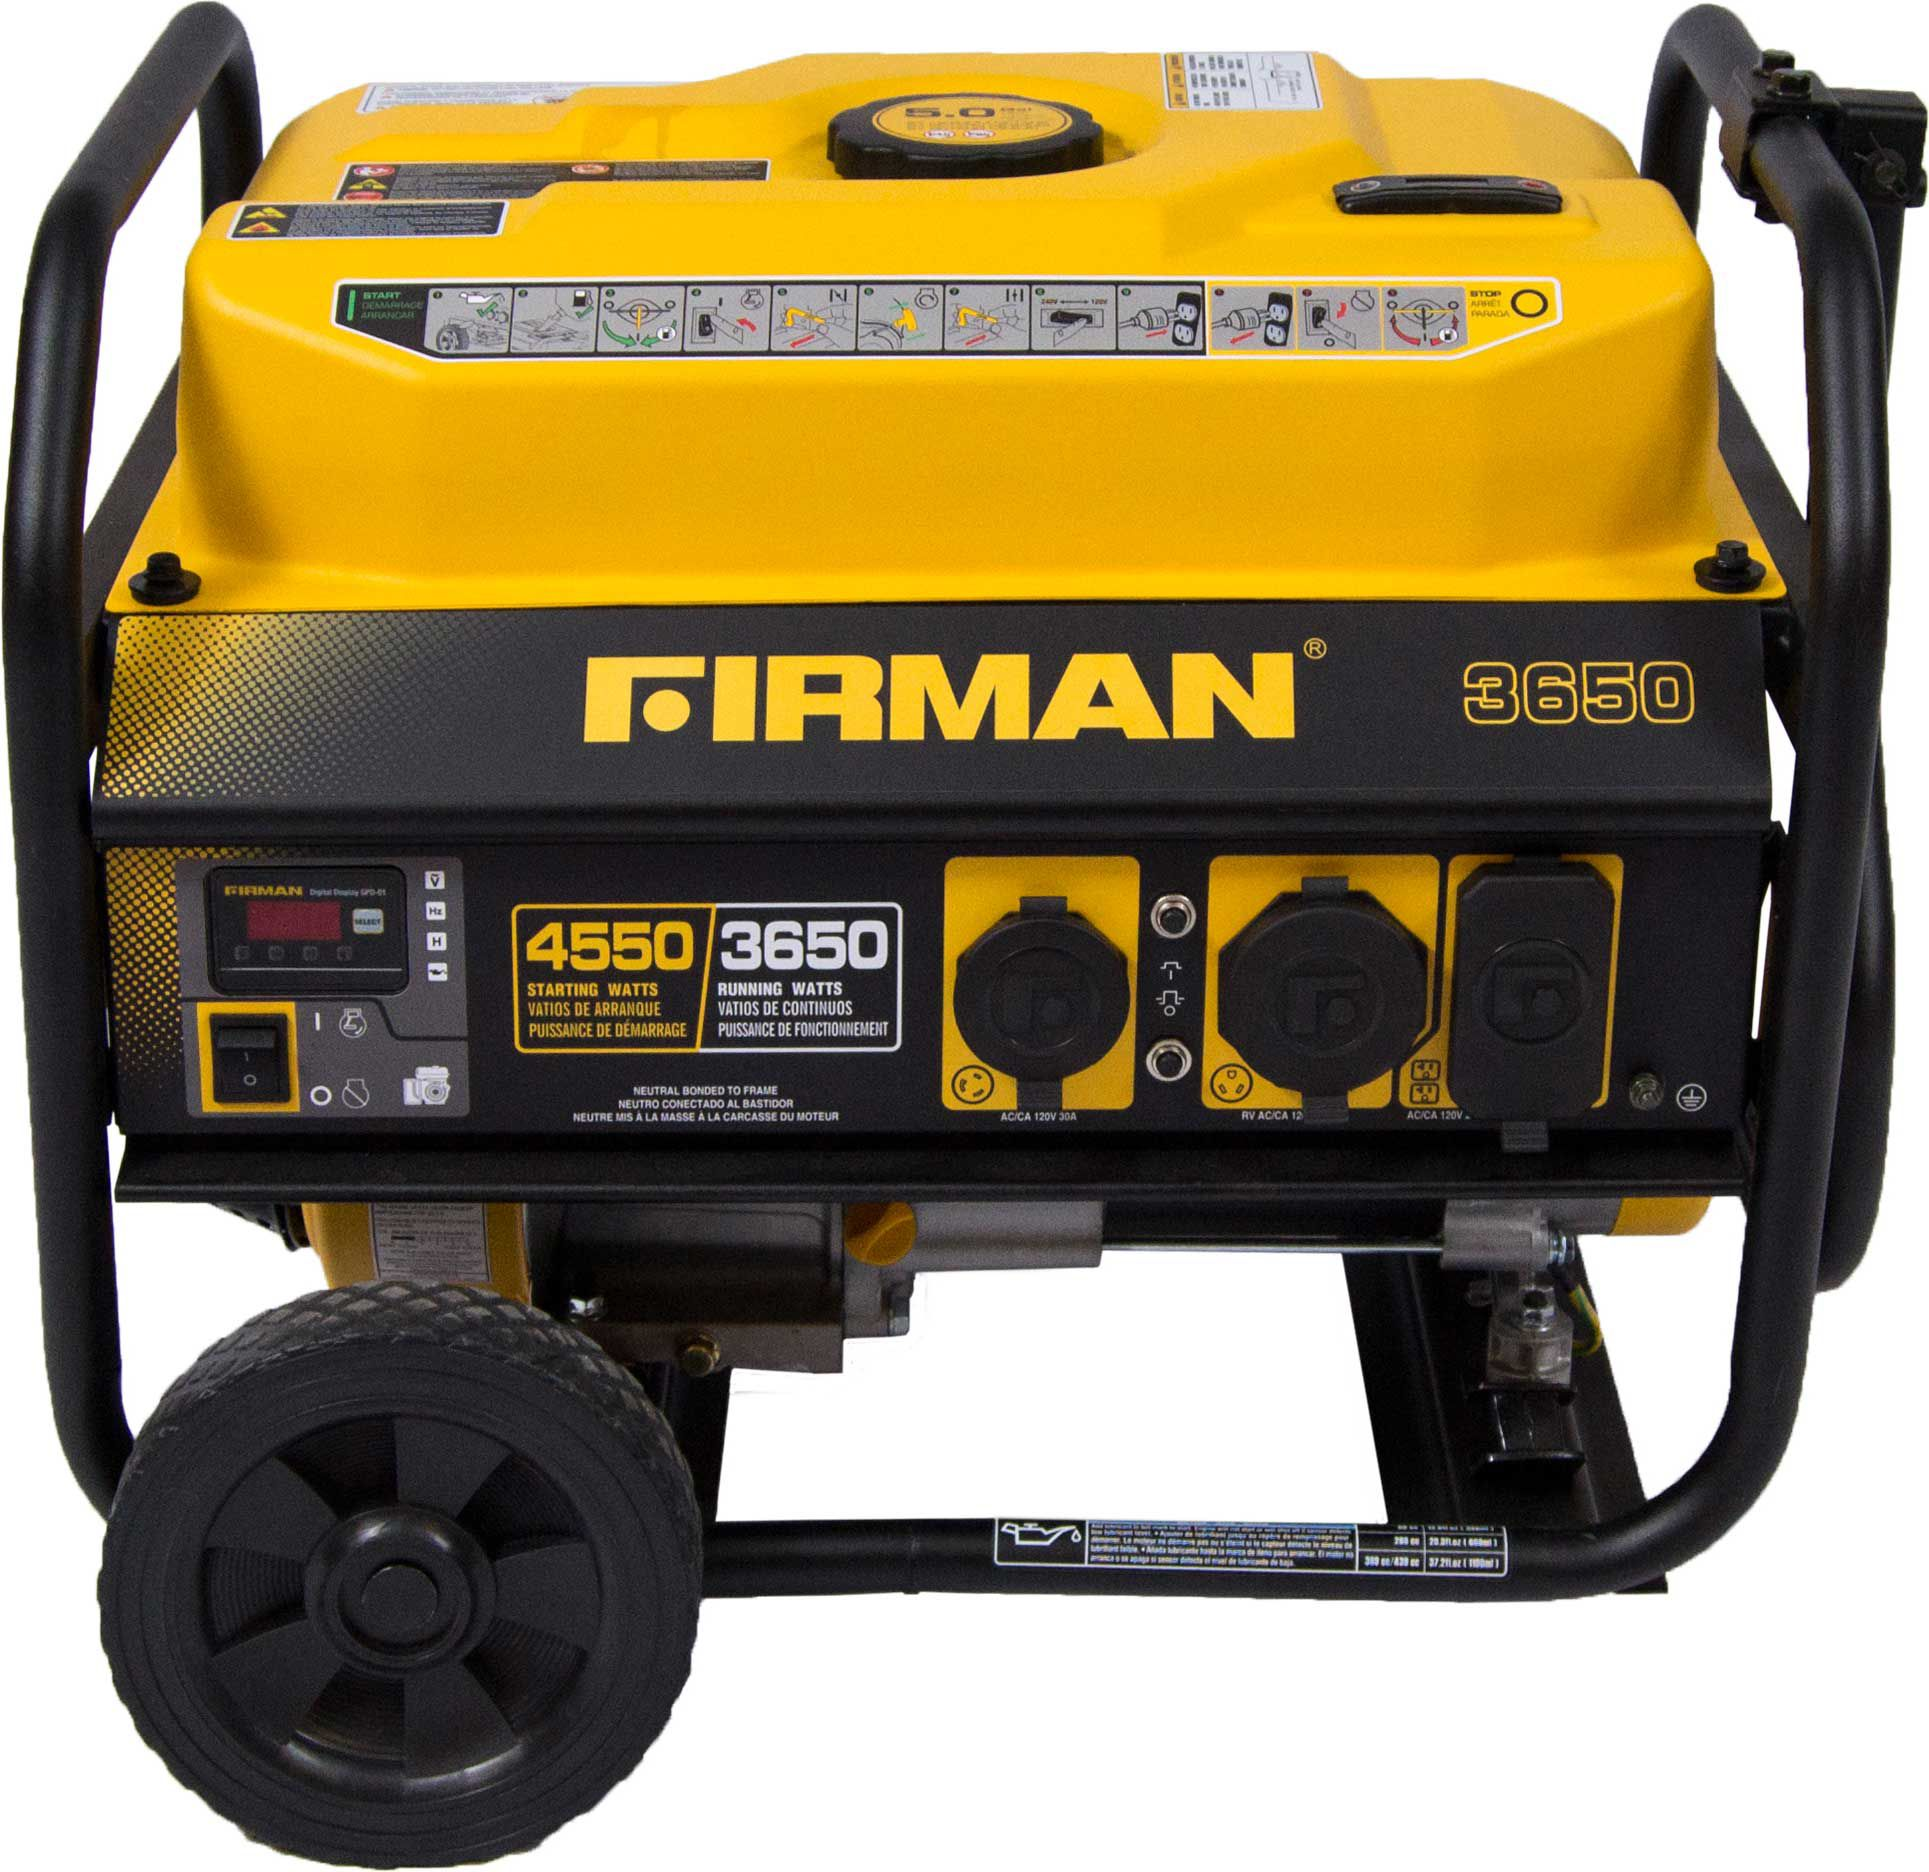 FIRMAN OHV W Portable Generator With Wheel Kit DICKS - Us address and zip code generator